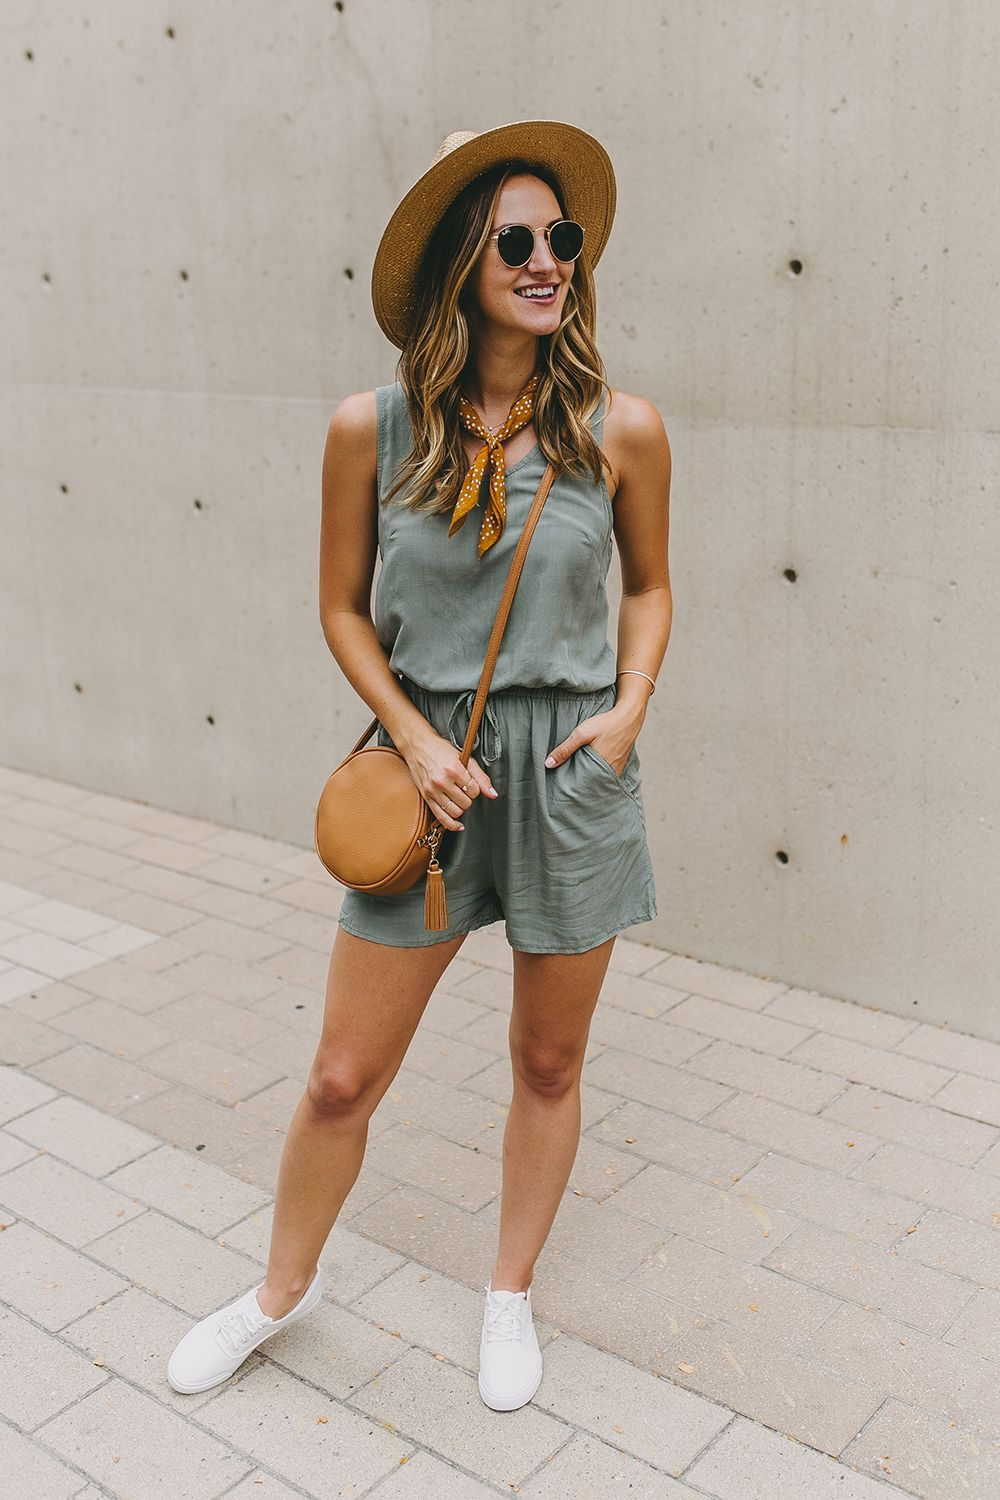 78cf4ee5a07 livvyland-blog-olivia-watson-austin-texas-fashion-lifestyle-blog -what-to-wear-acl-festival-6